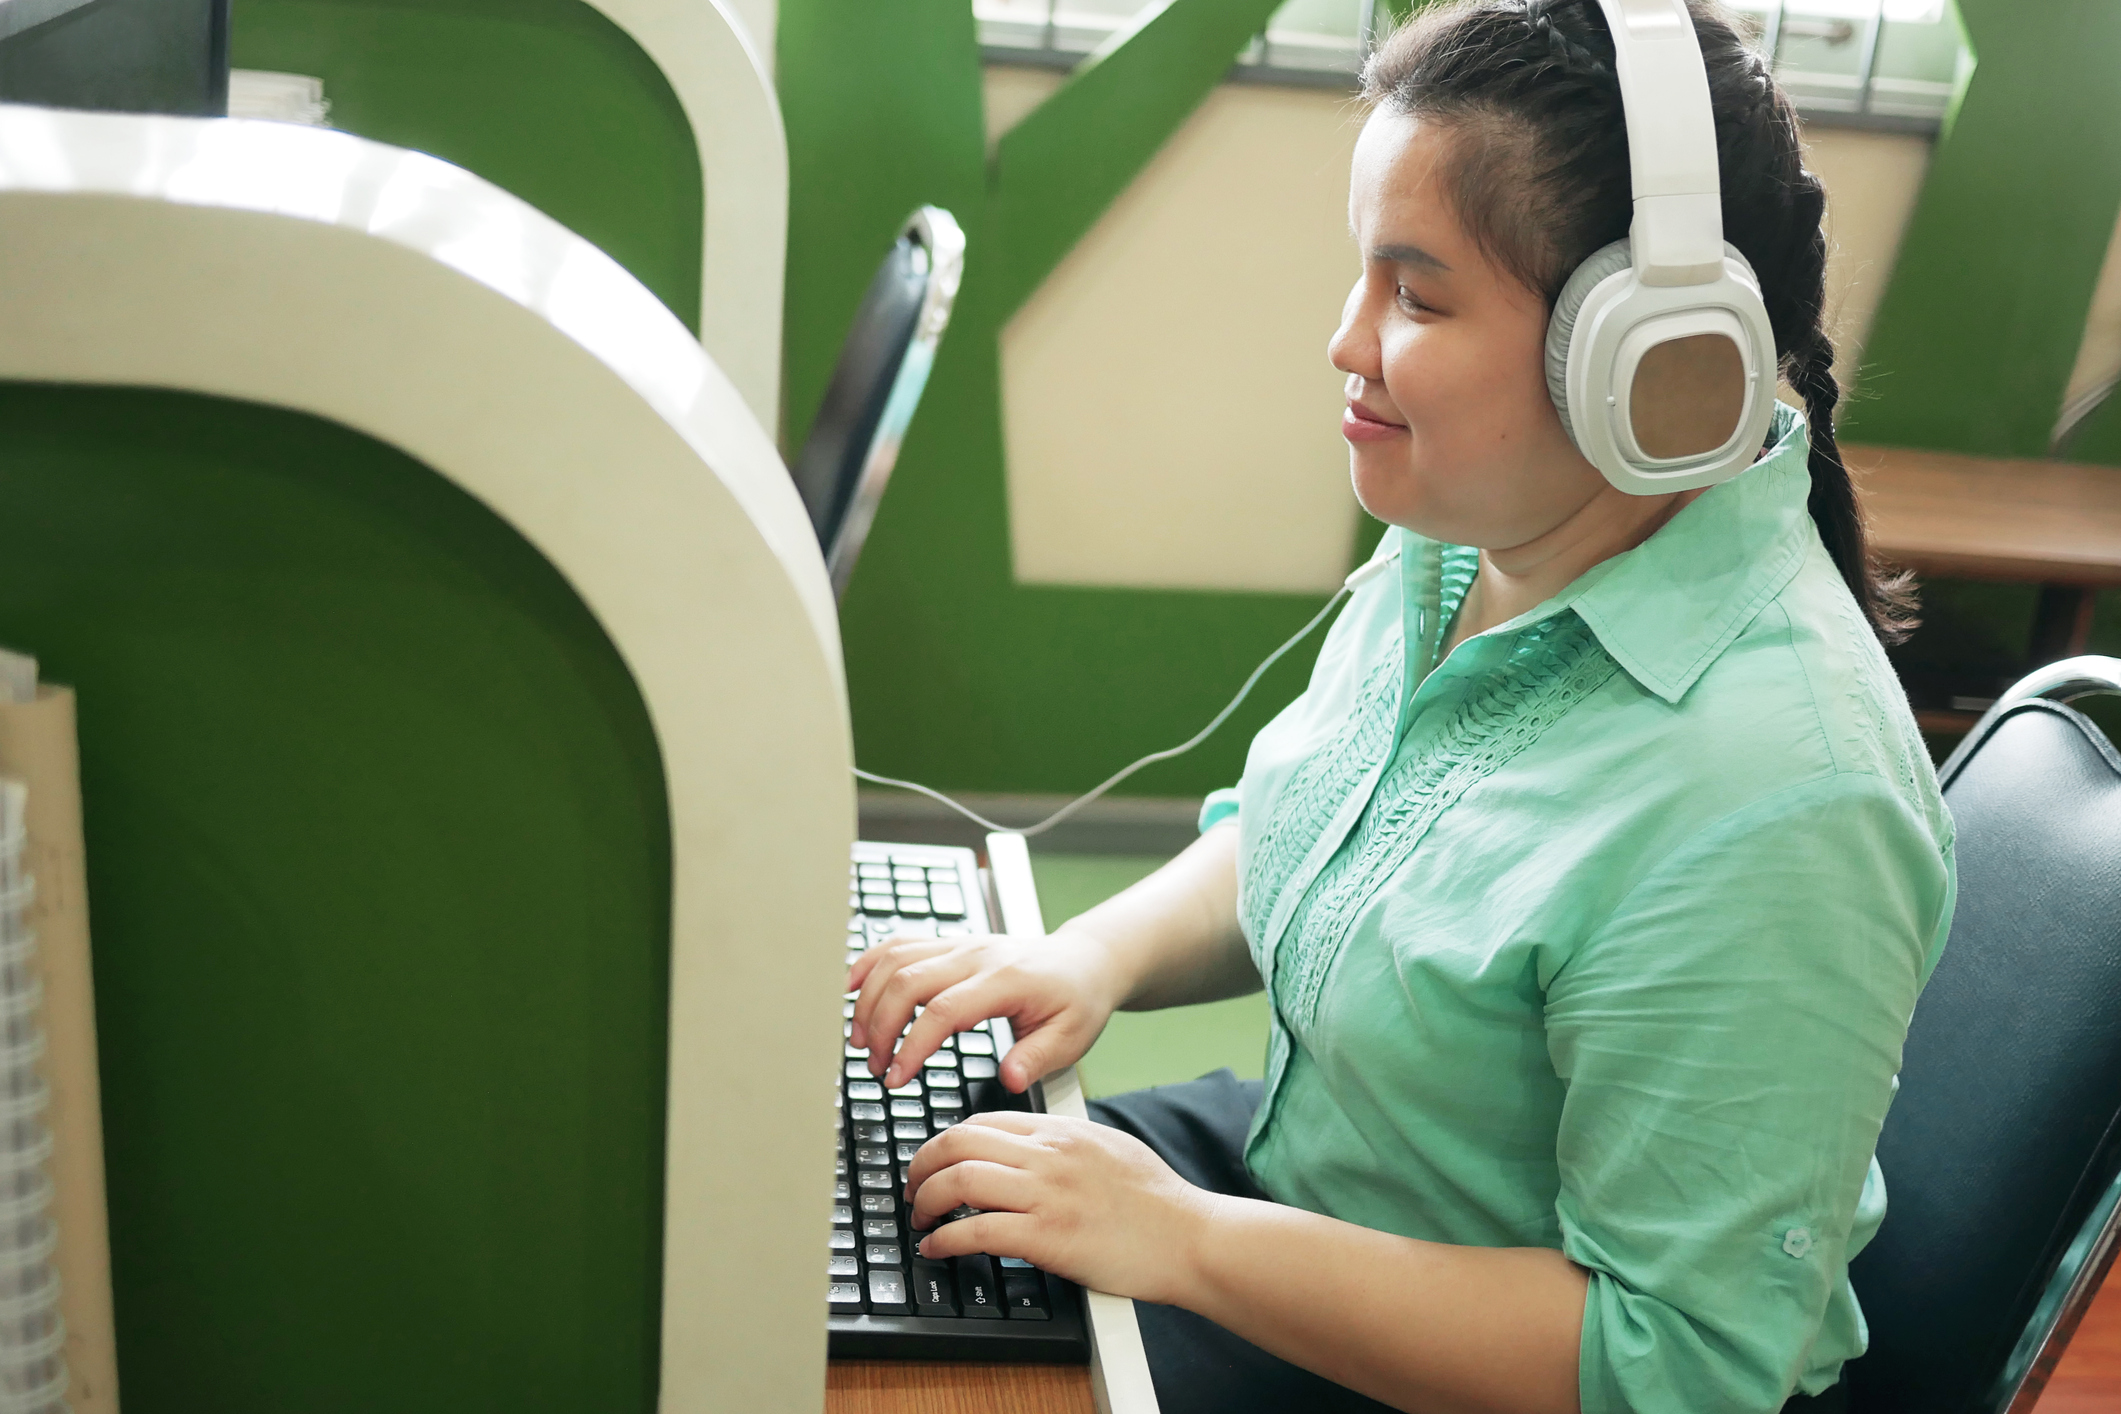 visually disabled women happily working at computer with headphones on